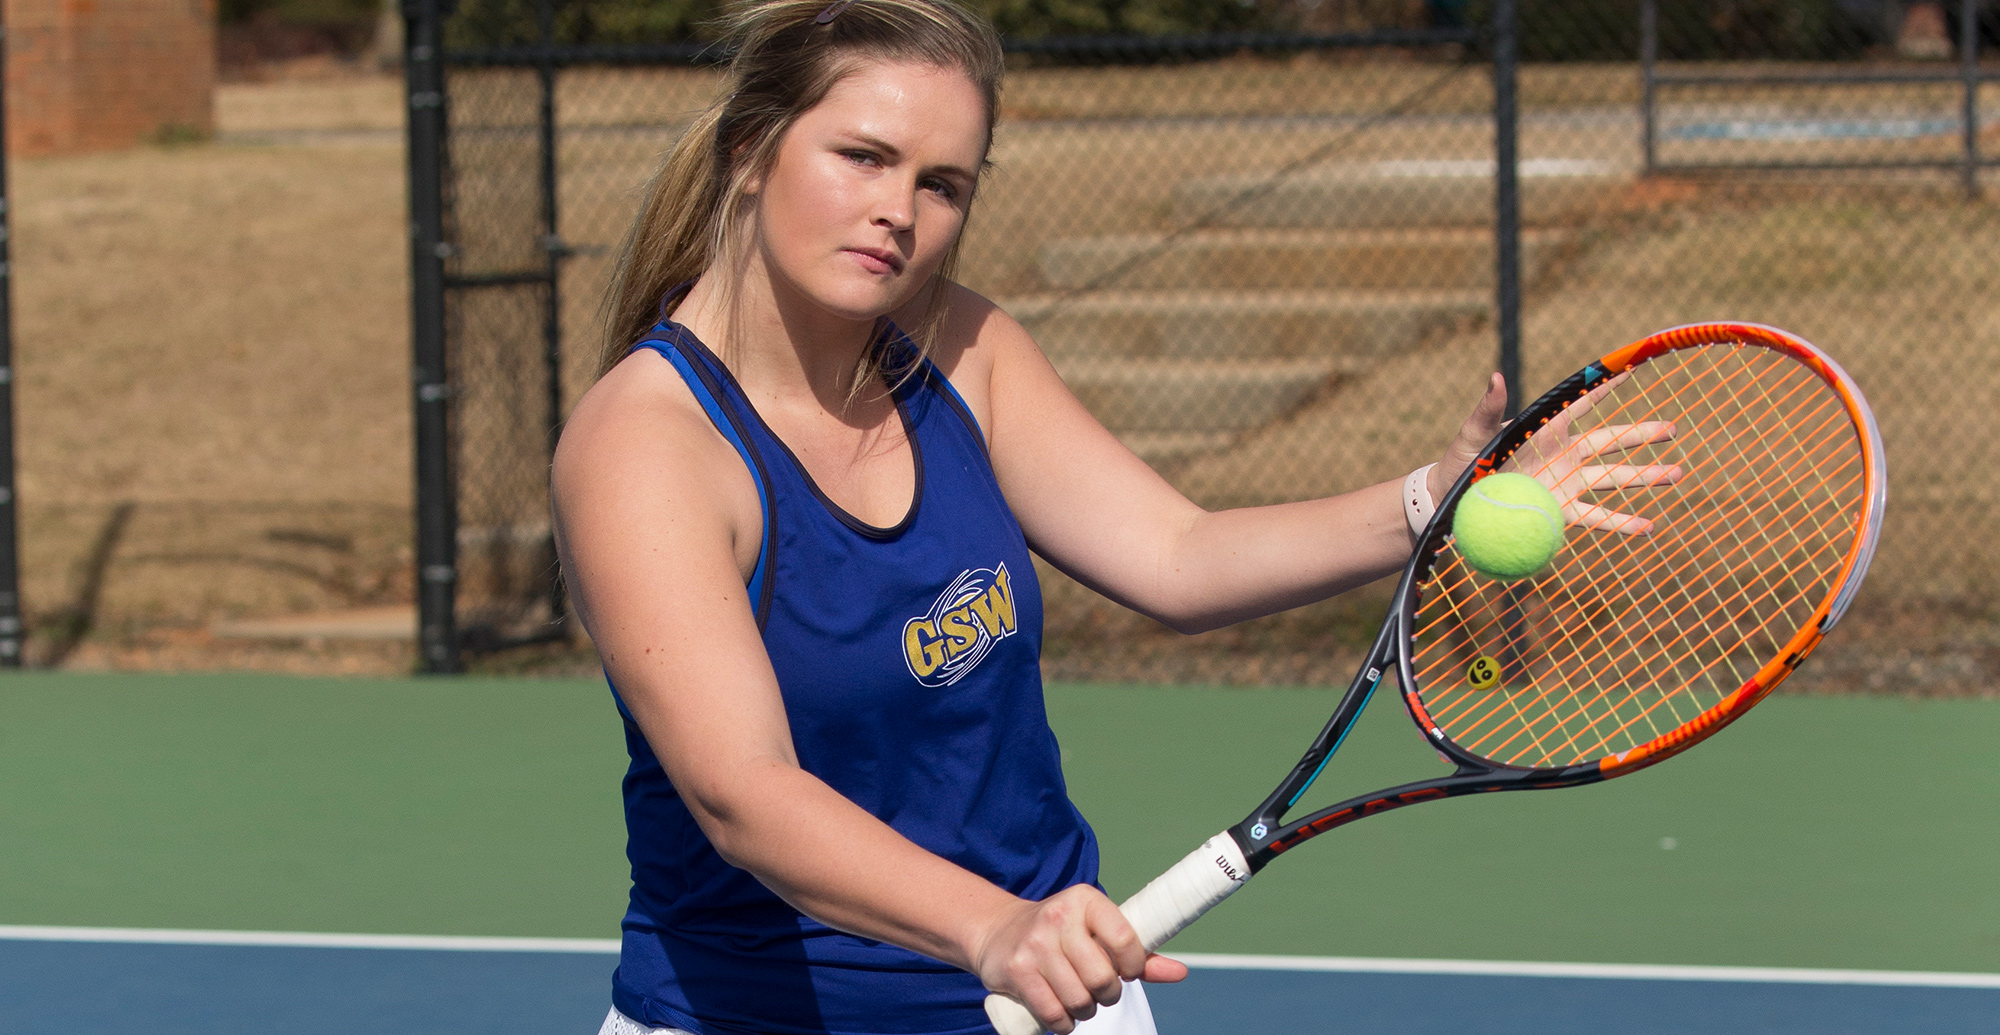 Weekend Recap: Tennis Teams Go 1-2 Over Busy Weekend